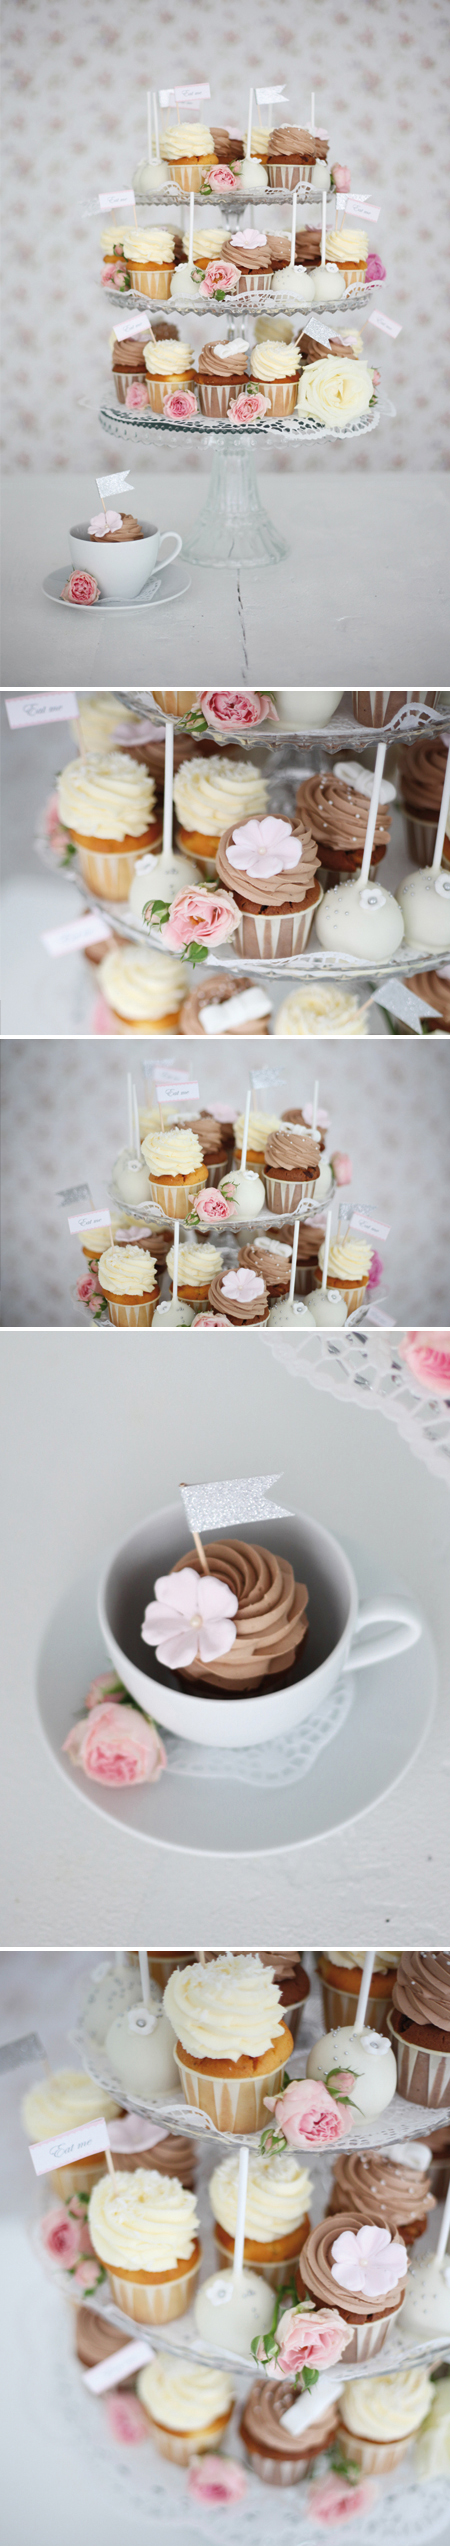 Cake Pop Presentation Ideas